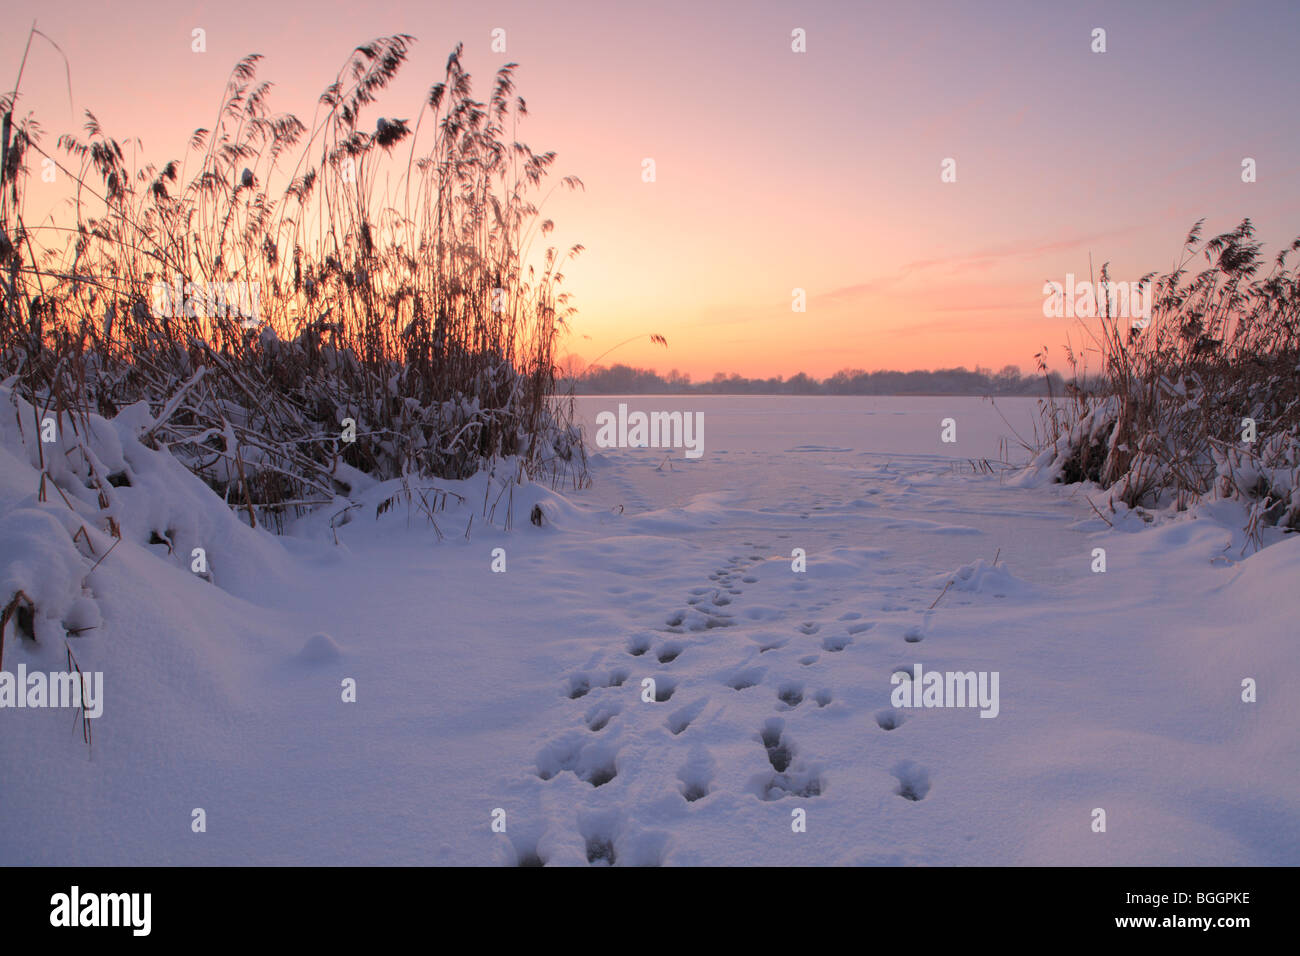 animal tracks in snow on frozen Posthorn lake (Posthornsee) in Halle (Germany) at dusk, Posthornsee in Halle (Saale) - Stock Image